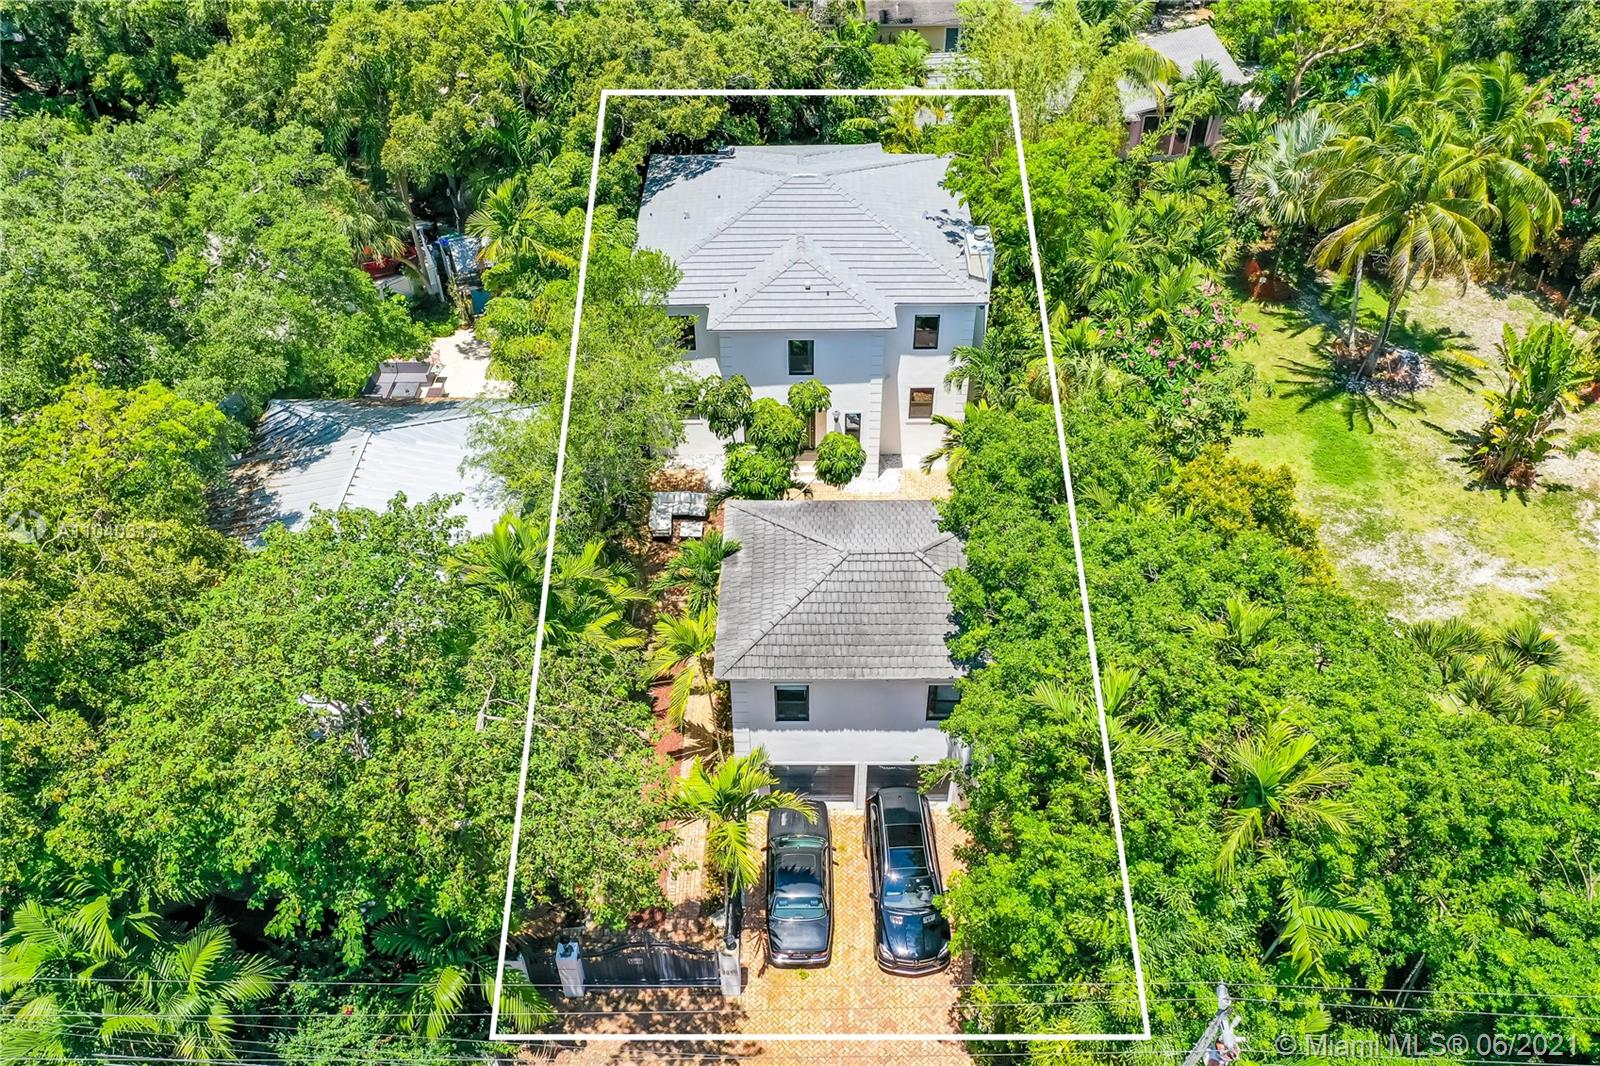 Single Family Home in the heart of Coconut Grove. This is a must see contemporary beauty on a lushly shaded lot w/ approximately total Living area of 4,241 Sq. Ft. (per owner's information), ideal for entertaining in 2 stories, 4/3.5 on main structure + an adjacent 2/1.5 guest-in law facility. Enjoy the pool and/or open pit BBQ. Natural wood floors on 2nd floor rooms & marble floors throughout. Ample well designed kitchen w/ wood cabinets & marble counter top. Top of the line stainless steel appliances & pantry makes this an ideal haven for cooking/entertaining lovers. Property has new roof, freshly painted inside and outside, Impact door & windows (done less than a year).